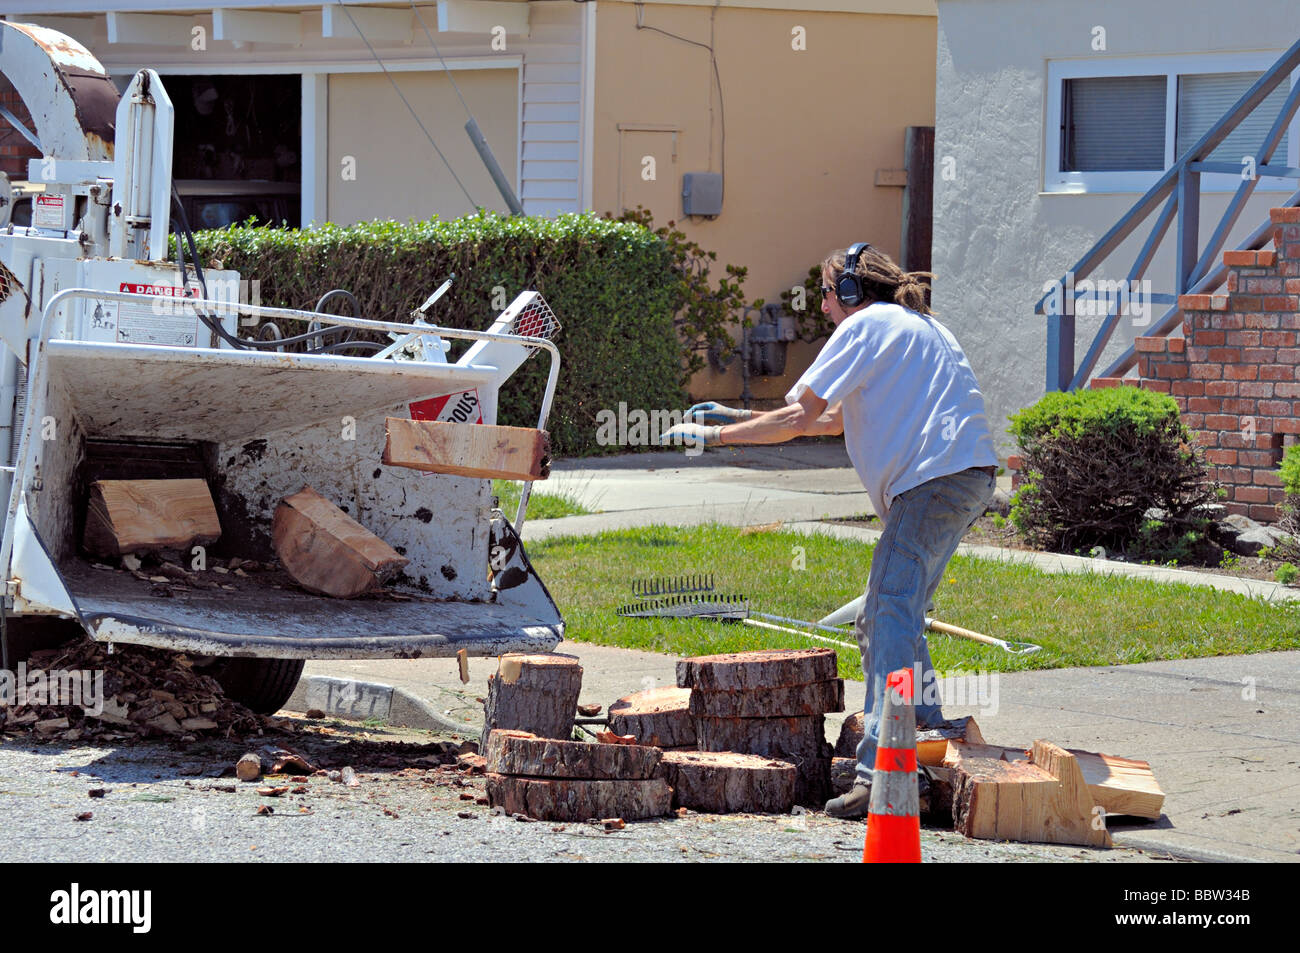 worker tosses wood into a chipper in an unsafe and unprotected way - Stock Image